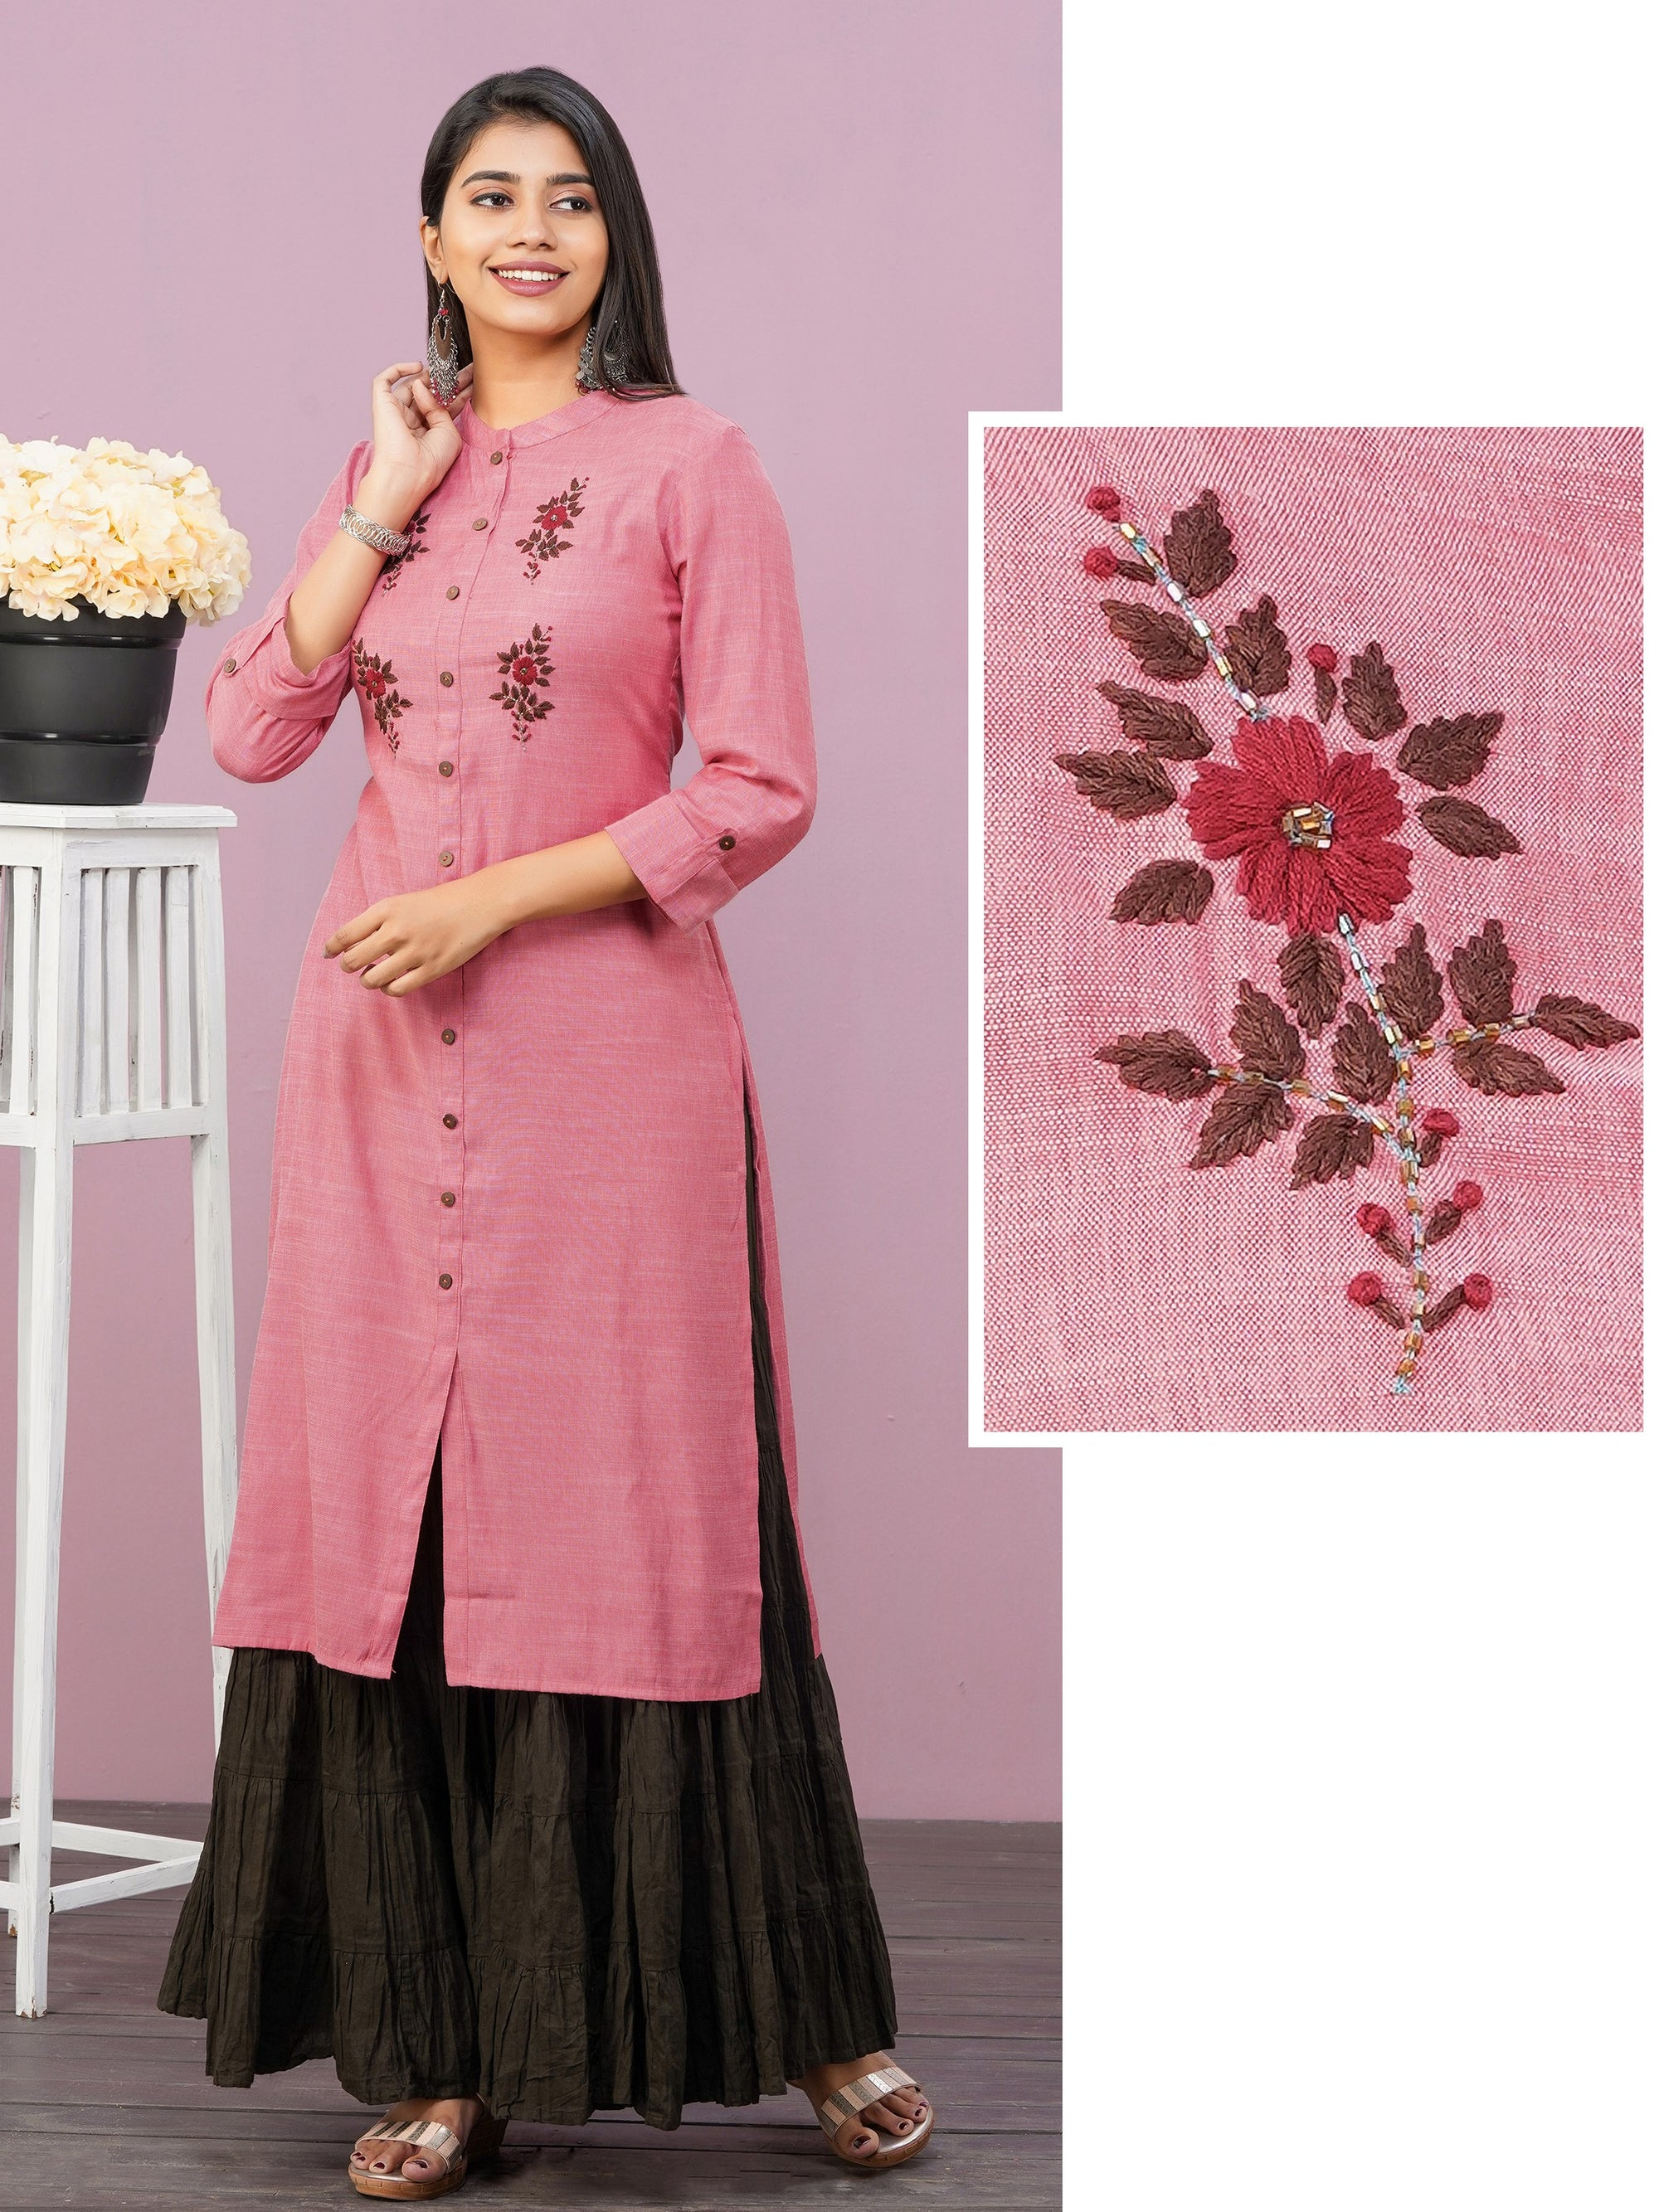 Hand Embroidered & Cutdana Embellished Kurti